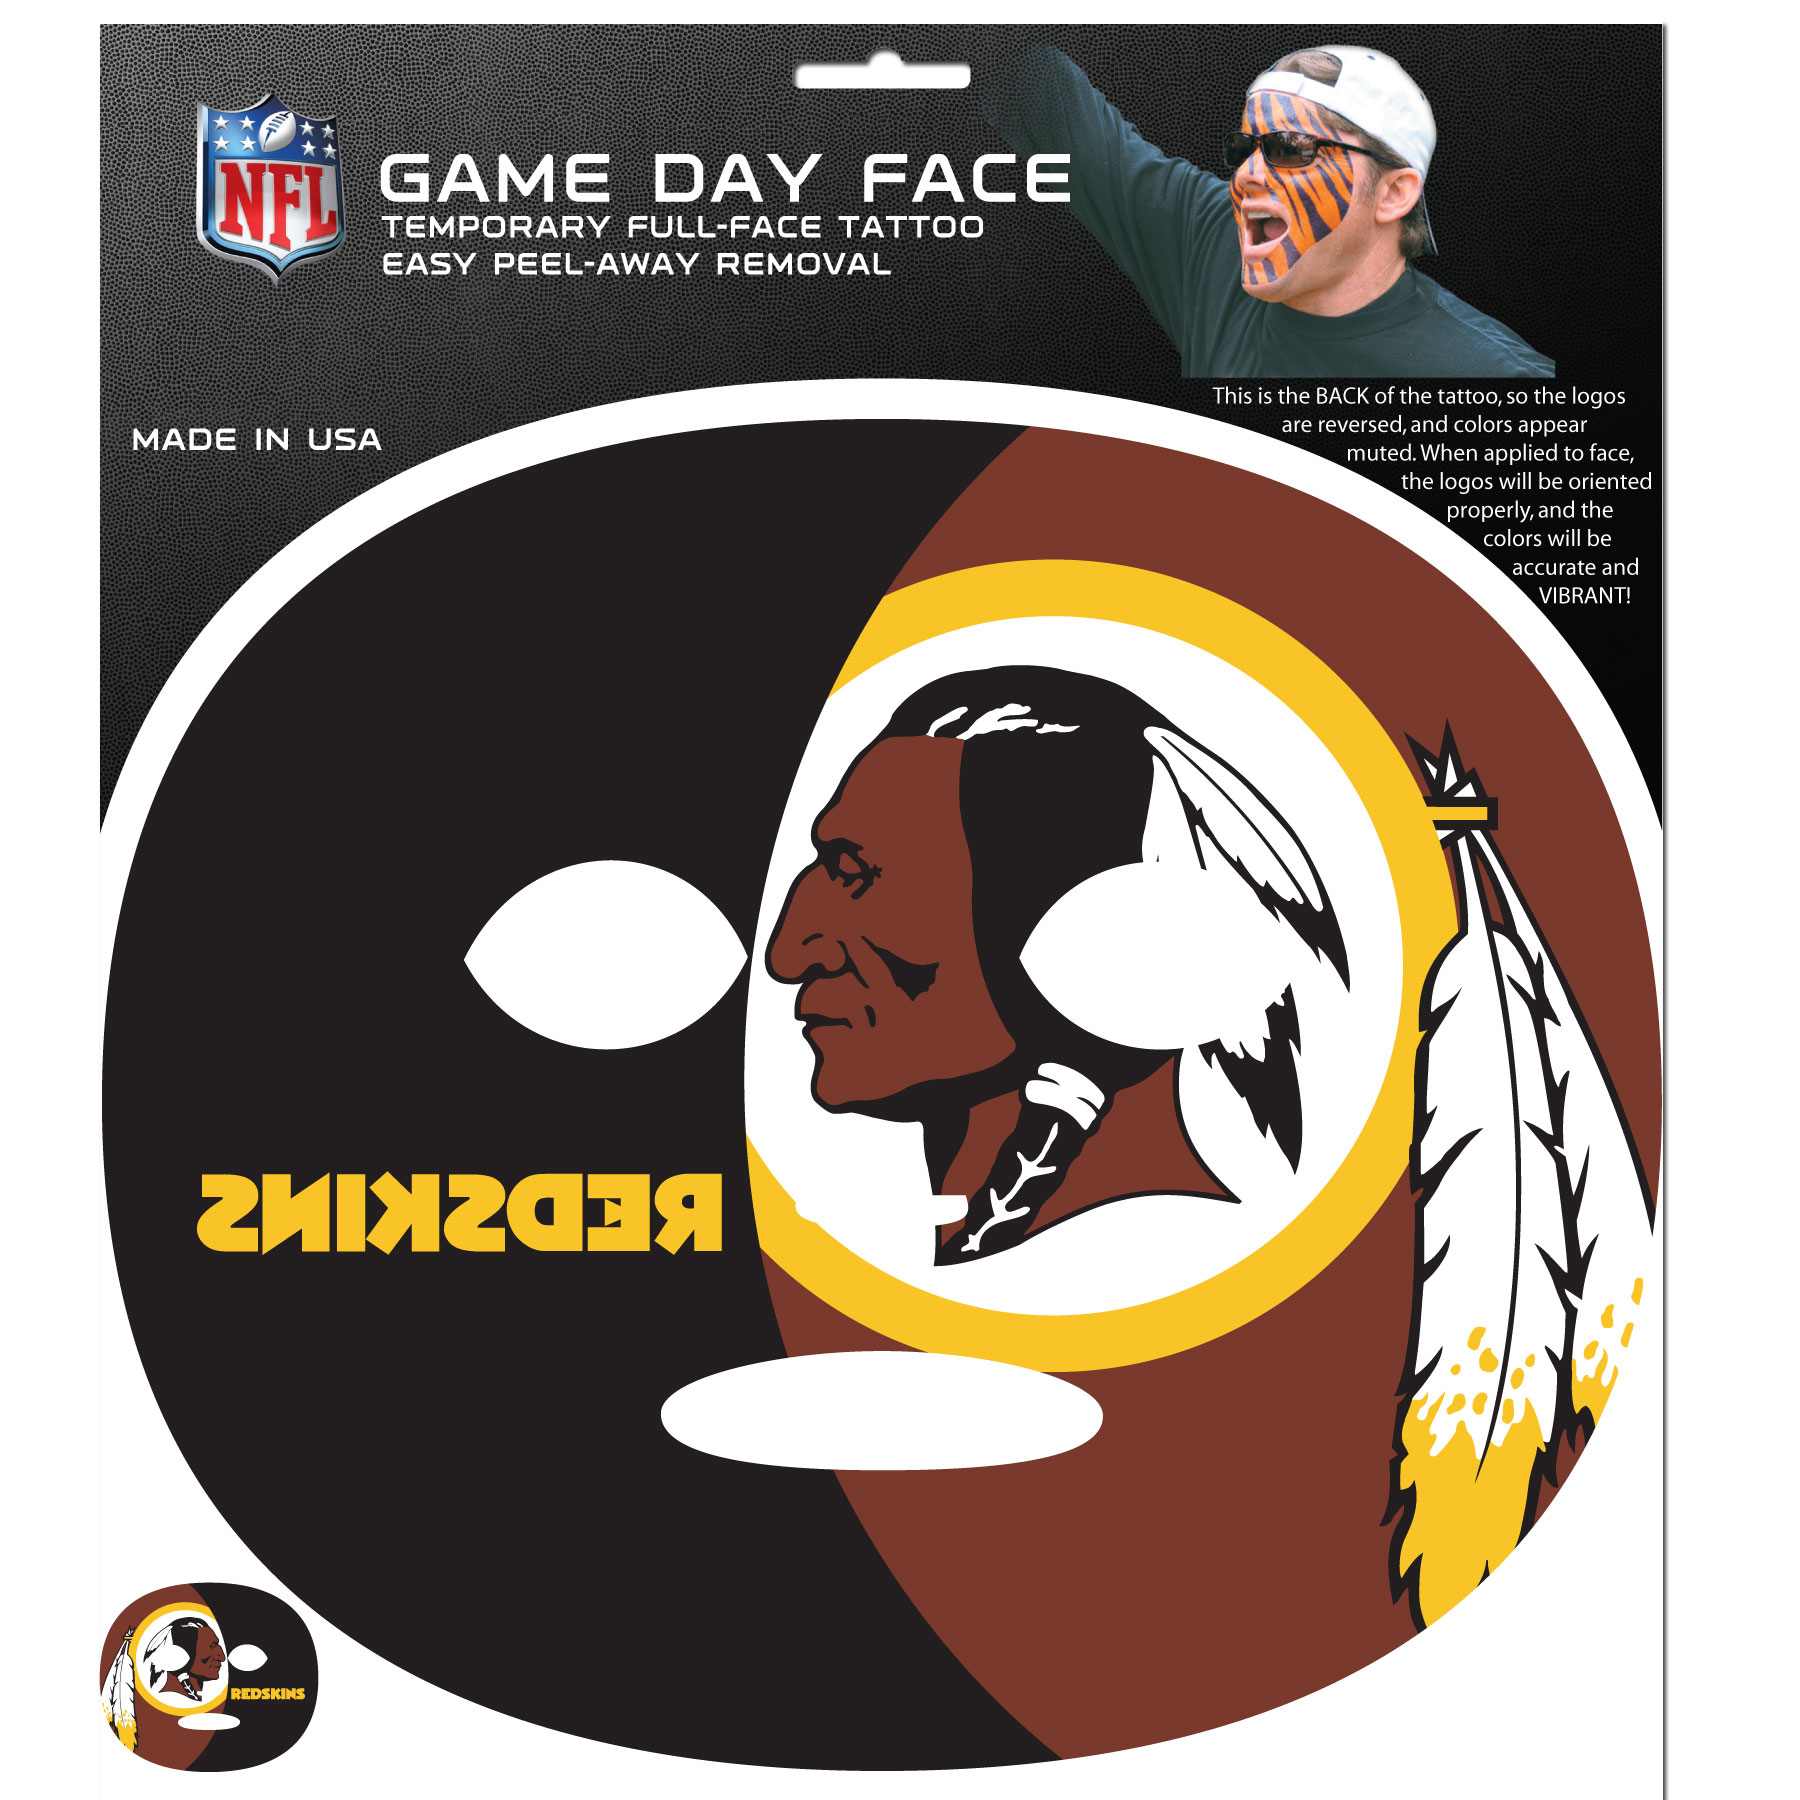 Washington Redskins Game Face Temporary Tattoo - No better way to show your Washington Redskins pride than by painting your face. Siskiyou's Game Day Face Temporary Tattoo isn't your typical face paint. It is a water based application that doesn't smudge, smear or sweat off  while you're wearing it and easily peels off after you're done celebrating your team's big Win! The temporary tattoo is large enough to trim down to fit your face.  Our Game Day Face Temporary Tattoo's are fun for fans of all ages. You may have seen our product before,  these are the same Temporary Face Tattoos as pitched on ABC's Shark Tank.